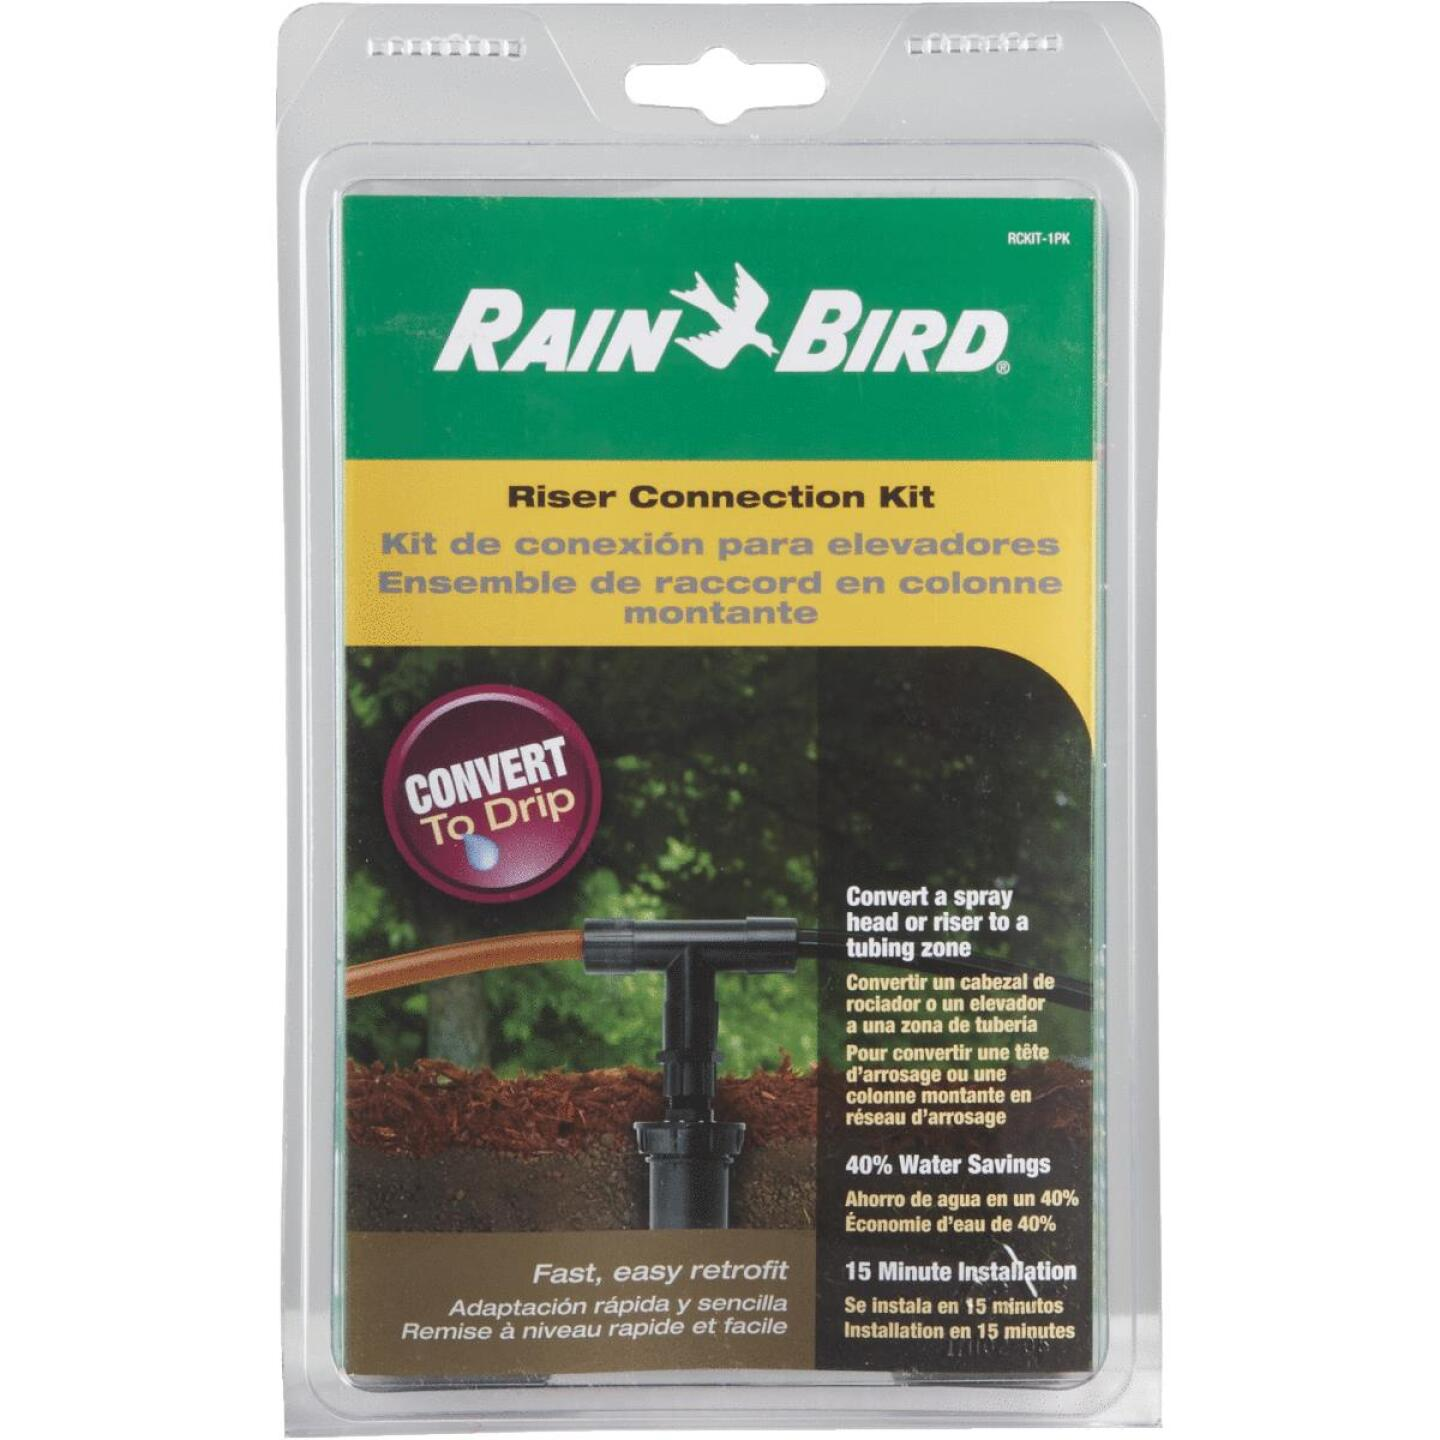 Rain Bird 1/2 In. Pop-Up-To Drip Kit Image 2